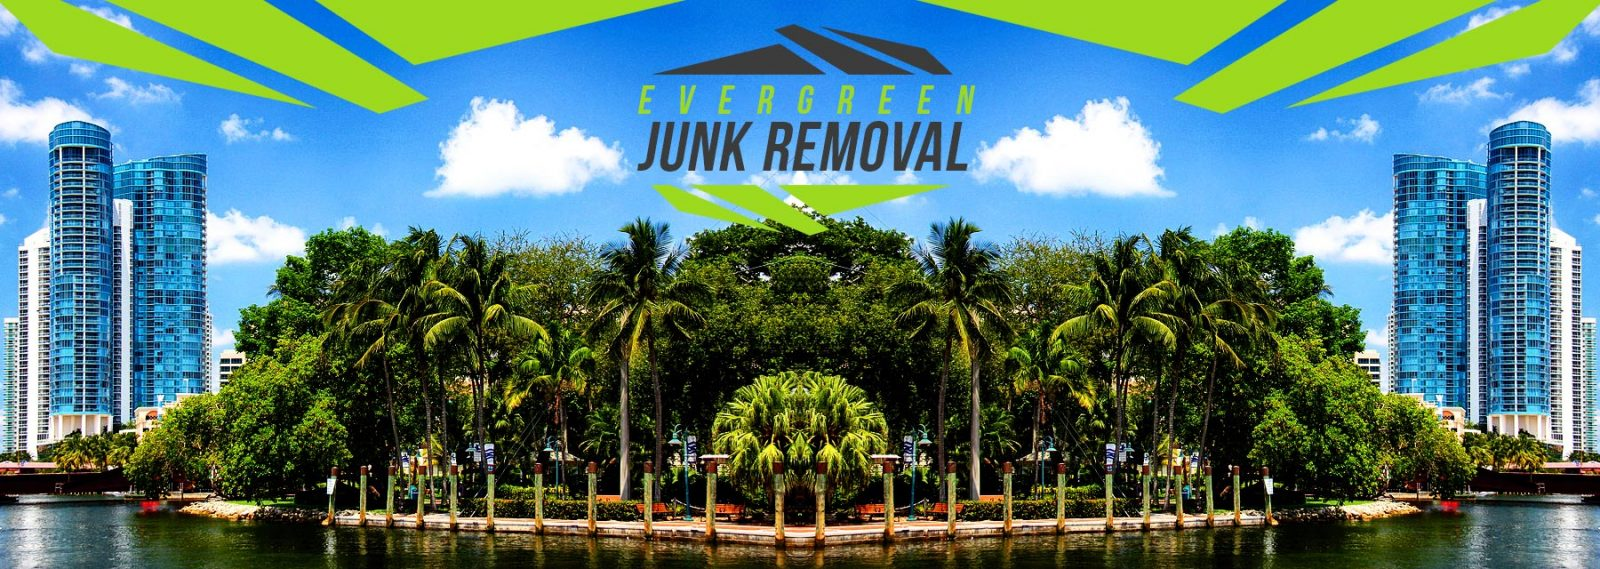 Royal Palm Beach Hot Tub Removal Company